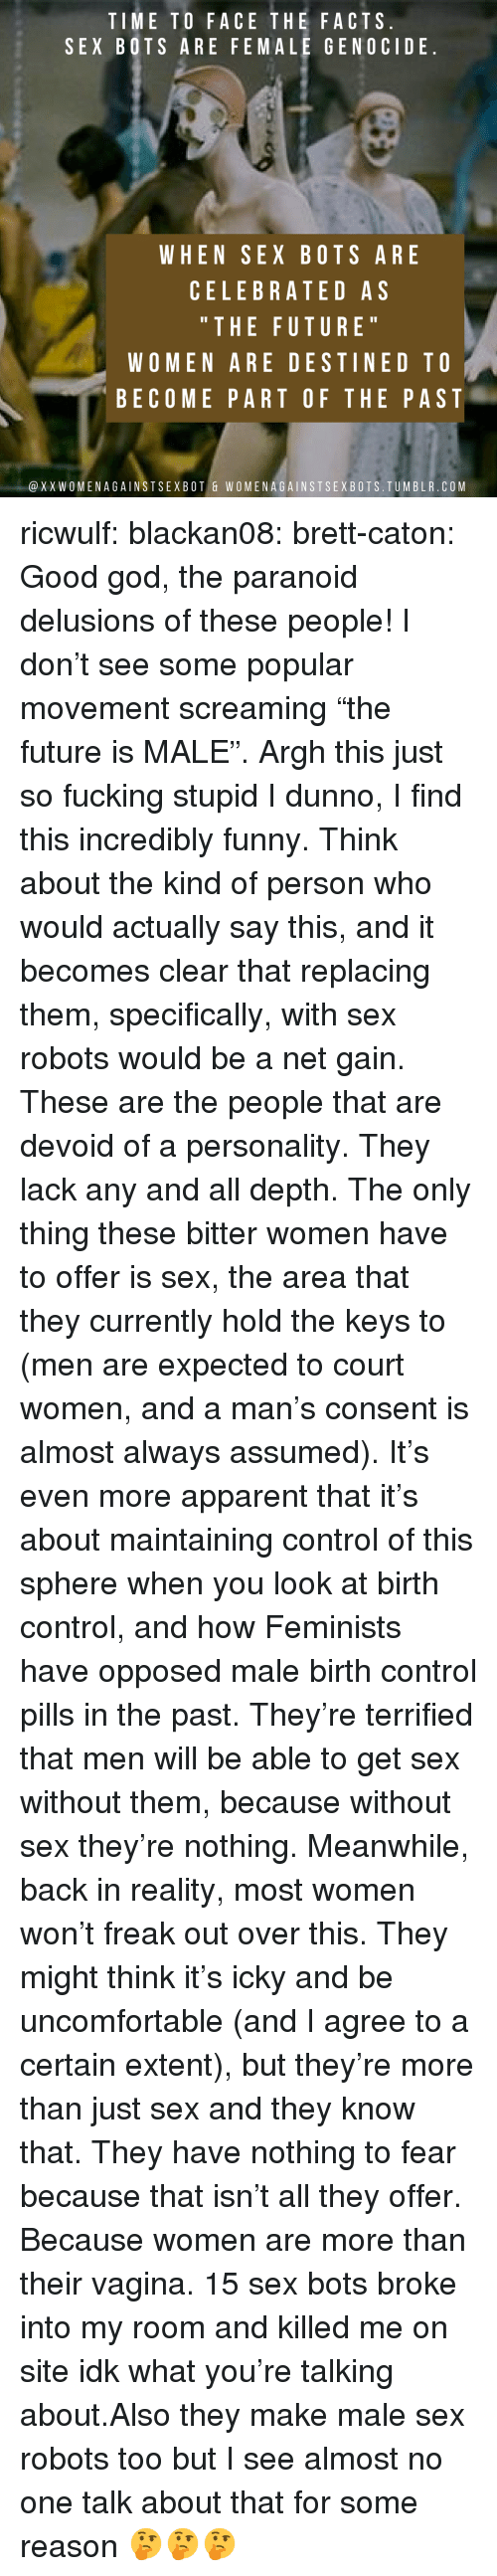 "Facts, Fucking, and Funny: TIME TO FACE THE FACTS  SEX BOTS ARE FEMALE GENOCIDE  WHEN SEX BOTS ARE  CELEBRATED AS  "" THE FUTURE  WOMEN ARE DESTINED TO  BECOME PART OF THE PAST  @XXWOMENAGAINSTSEXBOT & WOMENAGAINSTSEXBOTS.TUMBLR.COM ricwulf:  blackan08:   brett-caton: Good god, the paranoid delusions of these people! I don't see some popular movement screaming ""the future is MALE"". Argh this just so fucking stupid   I dunno, I find this incredibly funny. Think about the kind of person who would actually say this, and it becomes clear that replacing them, specifically, with sex robots would be a net gain. These are the people that are devoid of a personality. They lack any and all depth. The only thing these bitter women have to offer is sex, the area that they currently hold the keys to (men are expected to court women, and a man's consent is almost always assumed). It's even more apparent that it's about maintaining control of this sphere when you look at birth control, and how Feminists have opposed male birth control pills in the past.  They're terrified that men will be able to get sex without them, because without sex they're nothing. Meanwhile, back in reality, most women won't freak out over this. They might think it's icky and be uncomfortable (and I agree to a certain extent), but they're more than just sex and they know that. They have nothing to fear because that isn't all they offer. Because women are more than their vagina.   15 sex bots broke into my room and killed me on site idk what you're talking about.Also they make male sex robots too but I see almost no one talk about that for some reason 🤔🤔🤔"